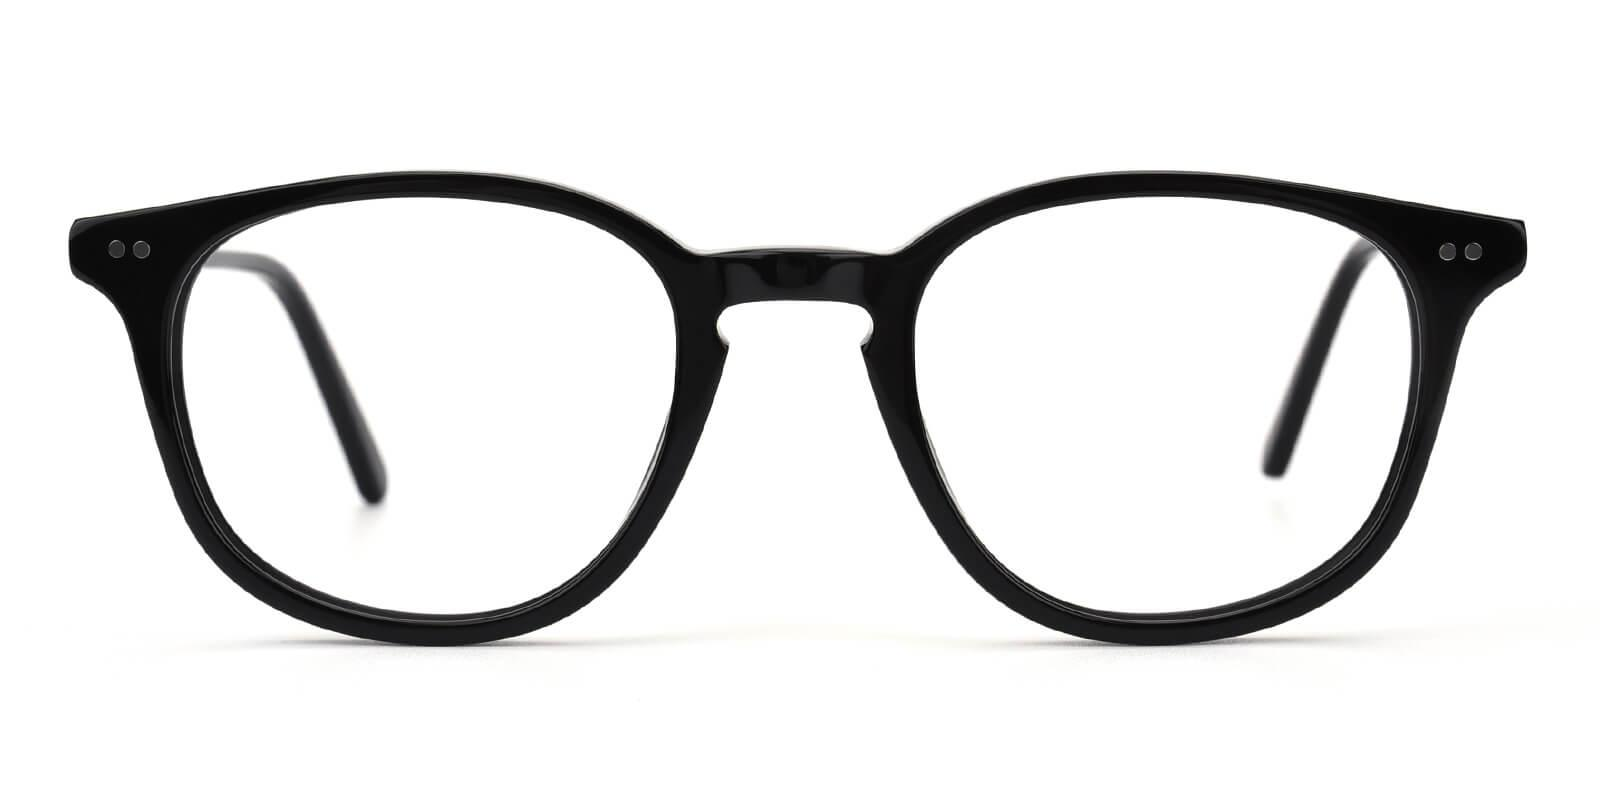 Trendiary-Black-Square-Acetate-Eyeglasses-additional2